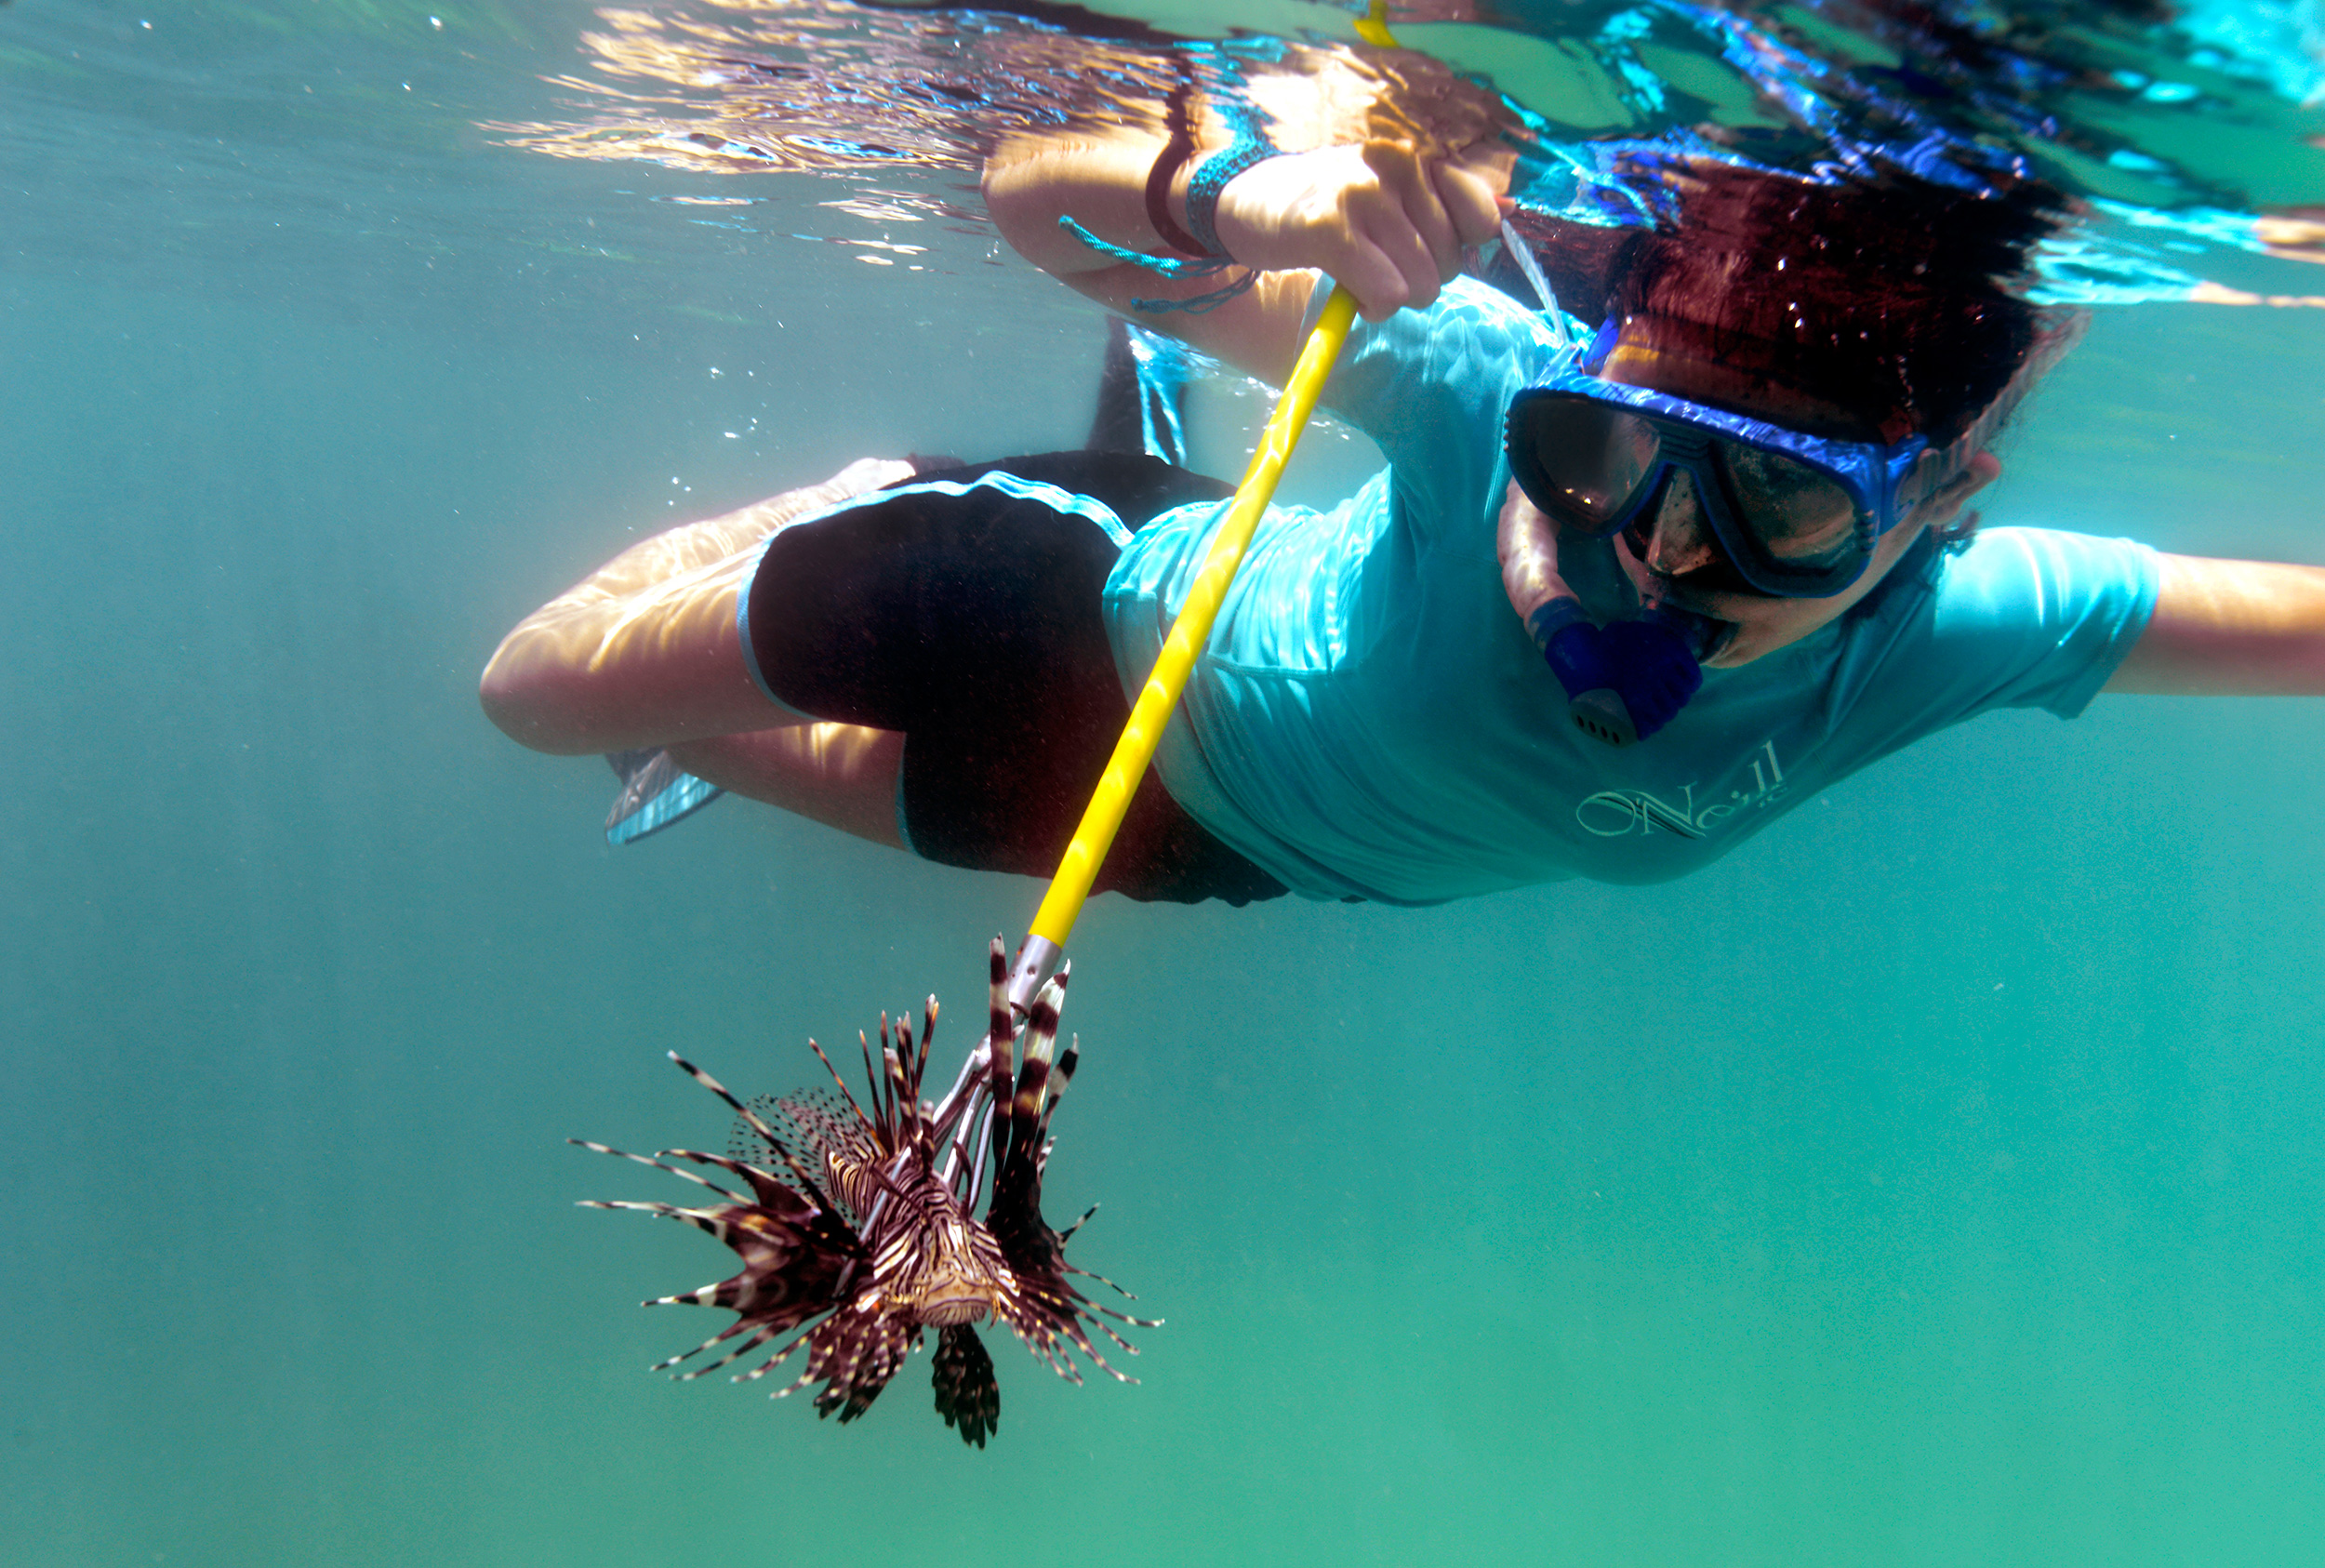 Counterattack how one community fends off an unwanted fish andrs hernndezs daughter romi 15 floats to the surface with a speared lionfish she received scuba certification through apacs which offers free dive 1betcityfo Images